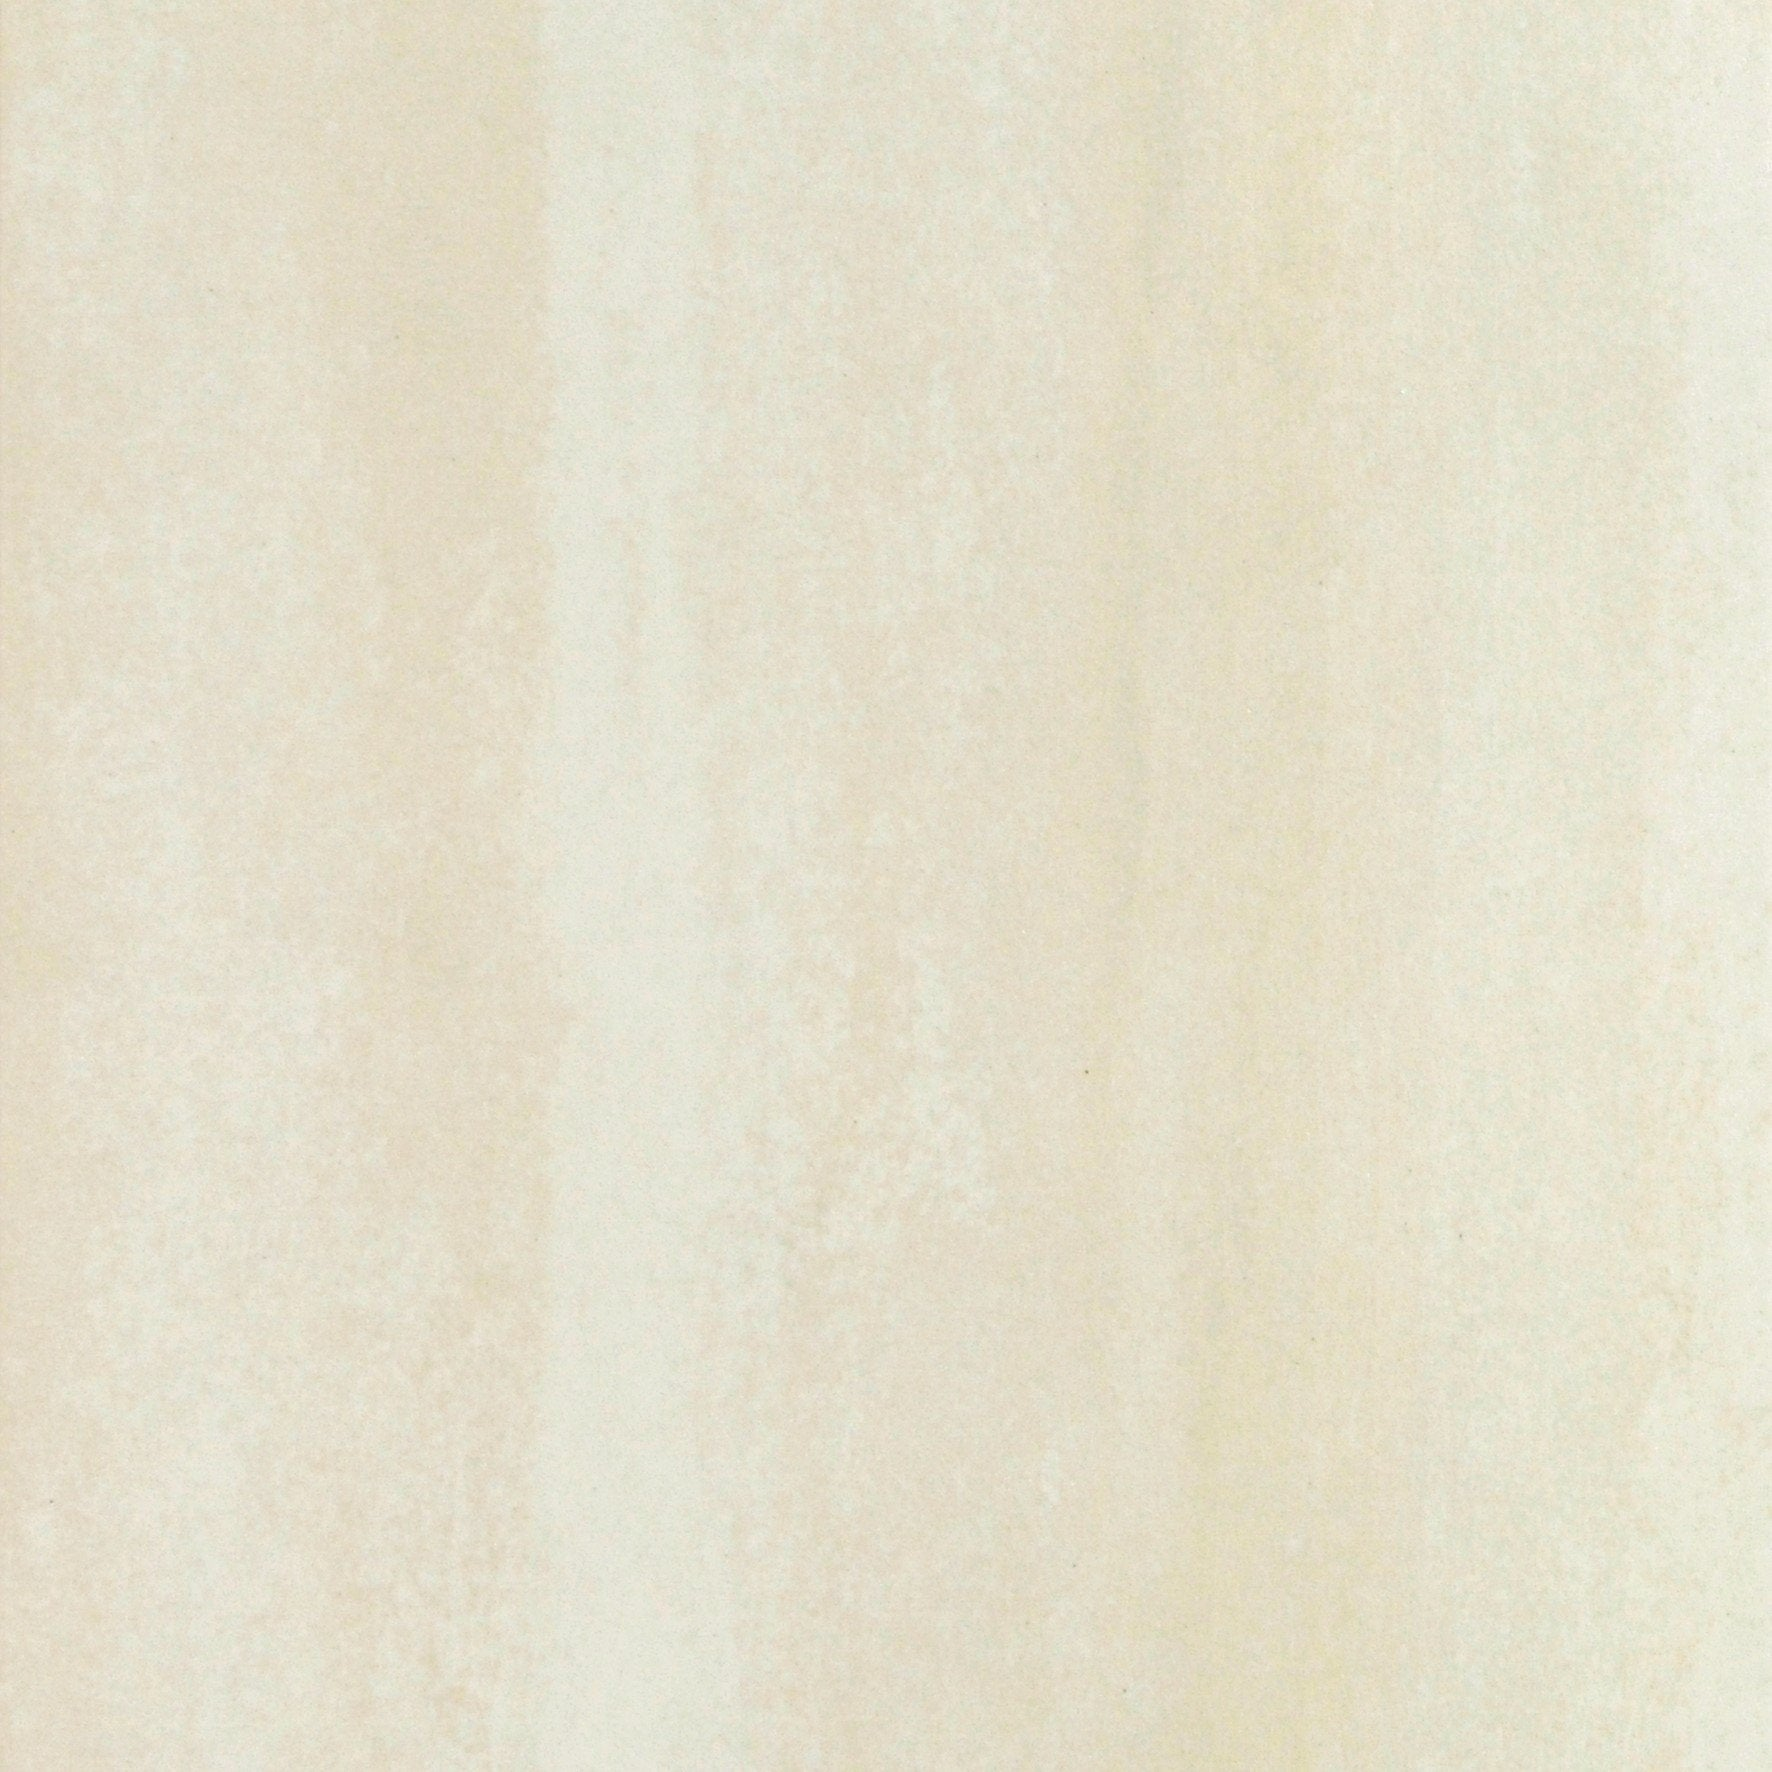 RAK - 6 Dolomite Matt Ivory Porcelain Tiles Per Box - 300x600mm